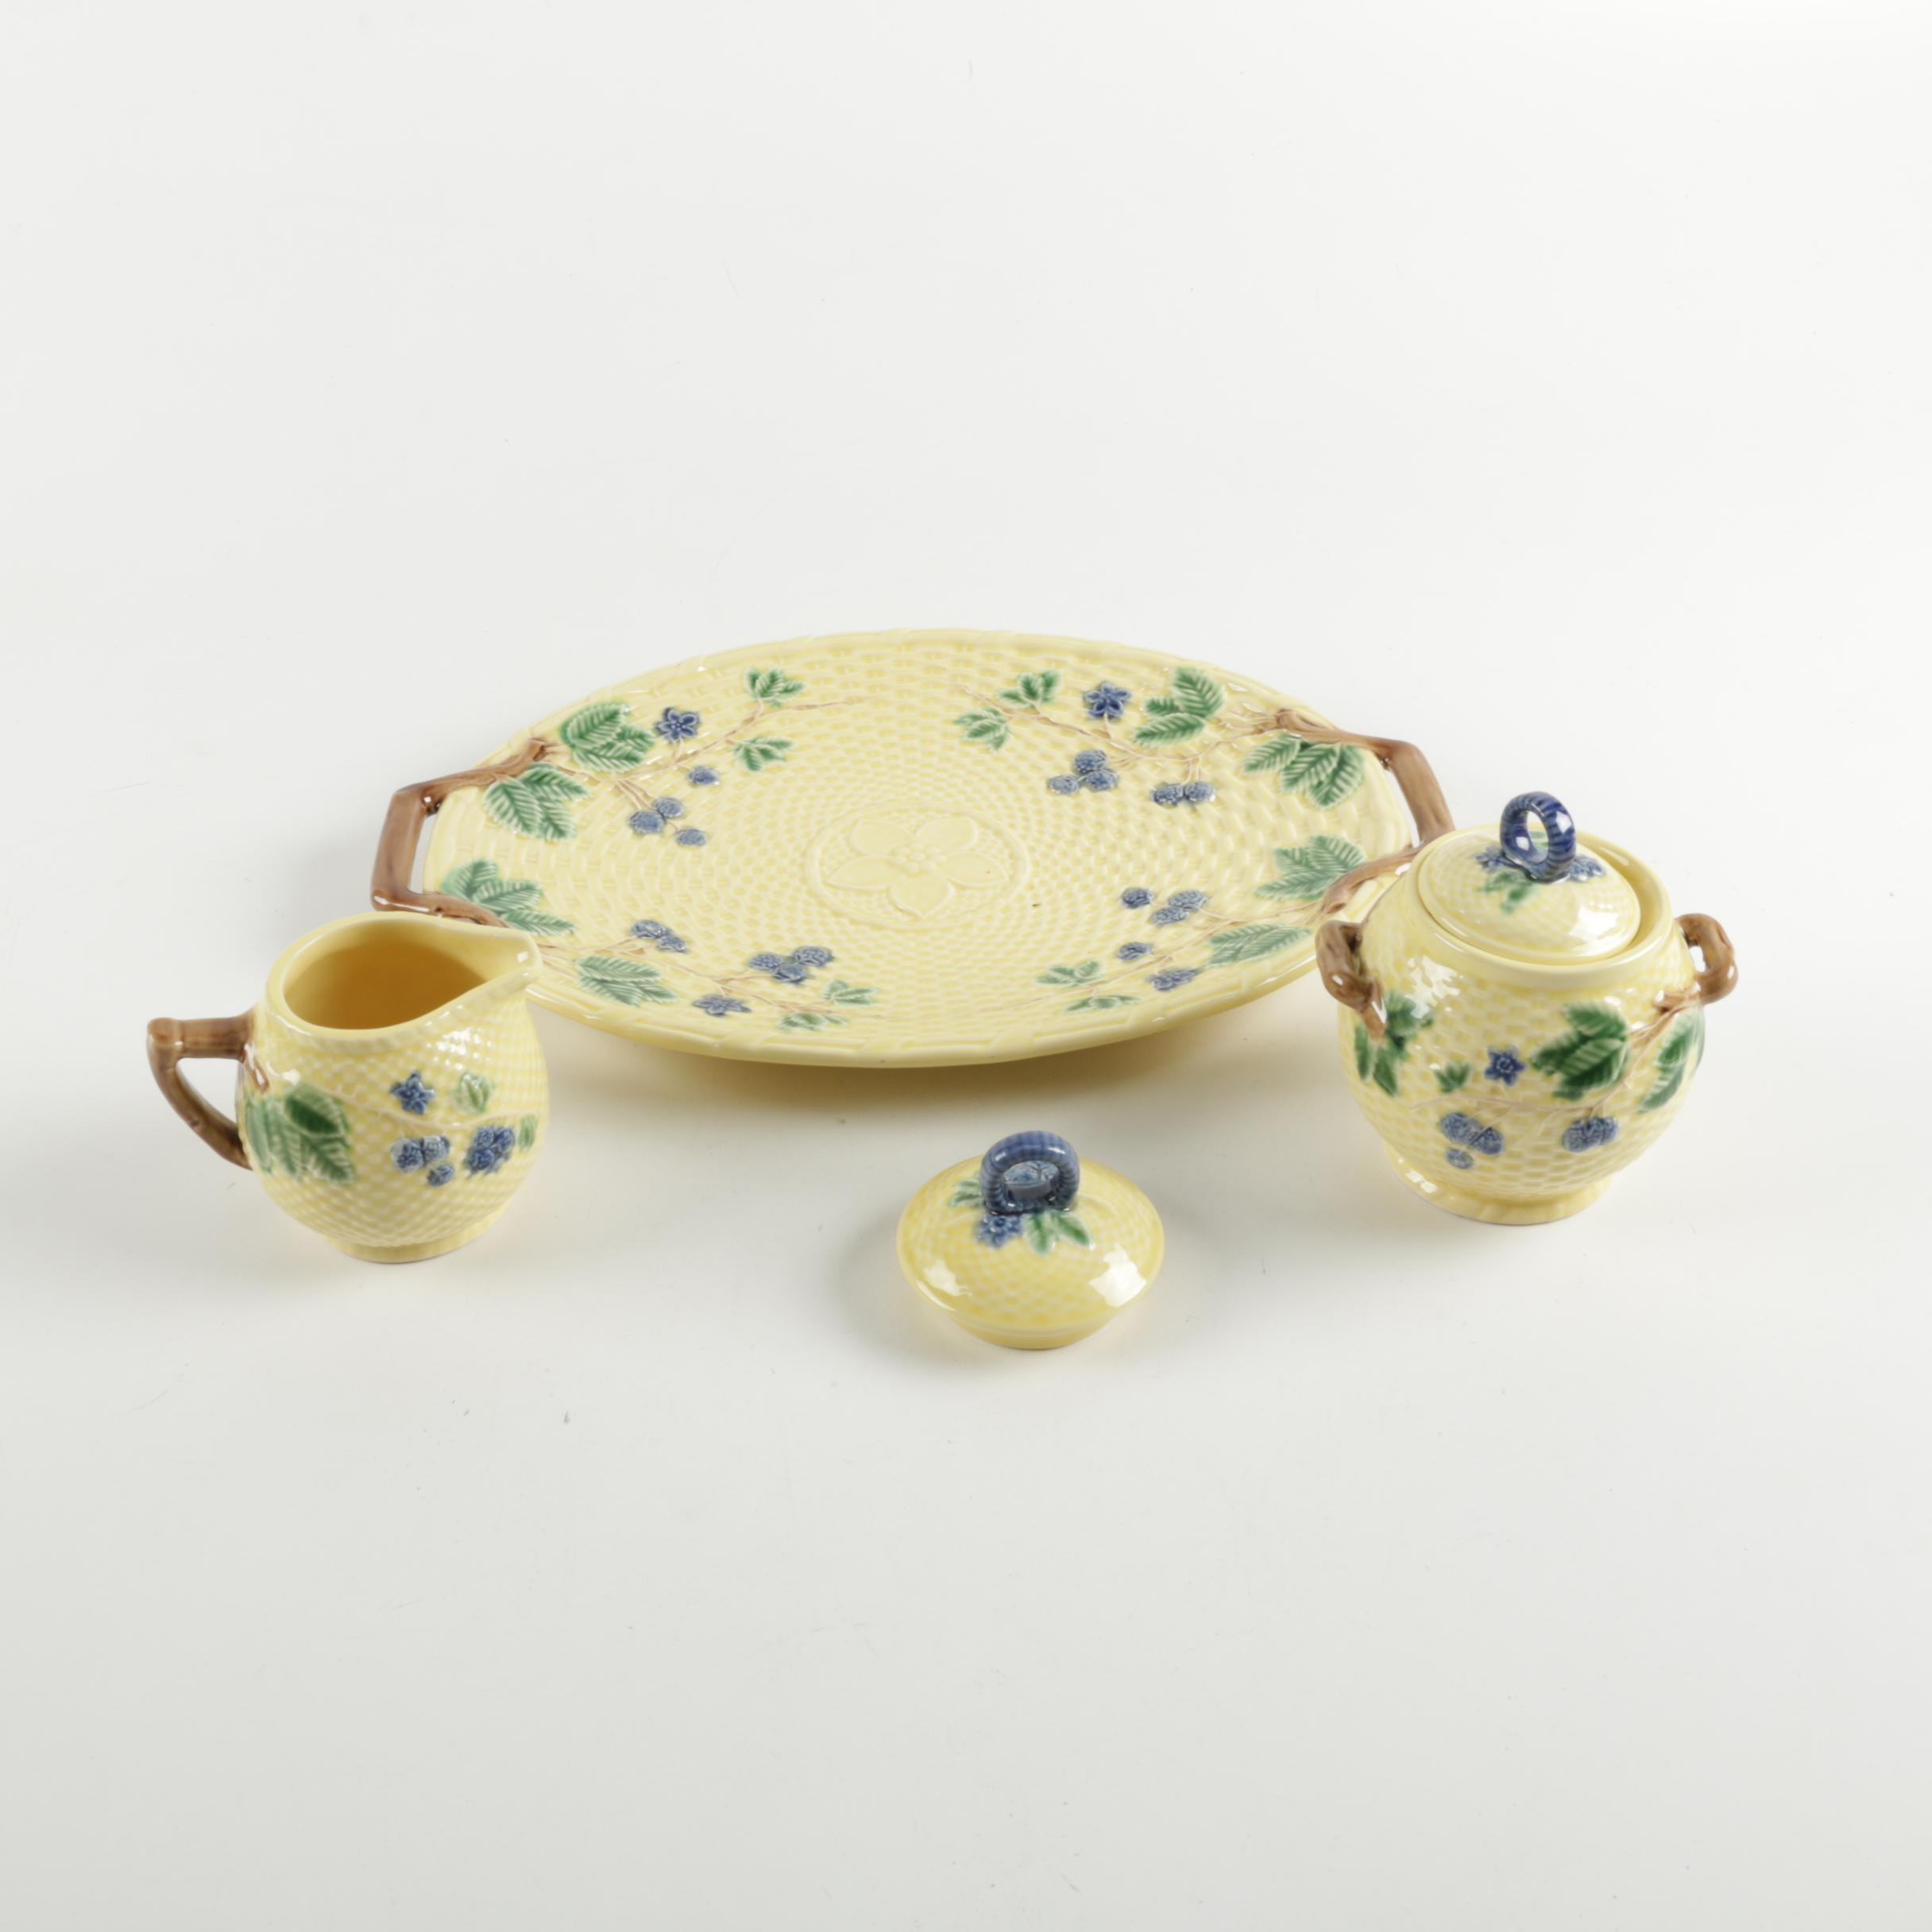 """Tiffany & Co. """"Blackberries"""" Ceramic Platter with Creamer and Sugar Bowl"""